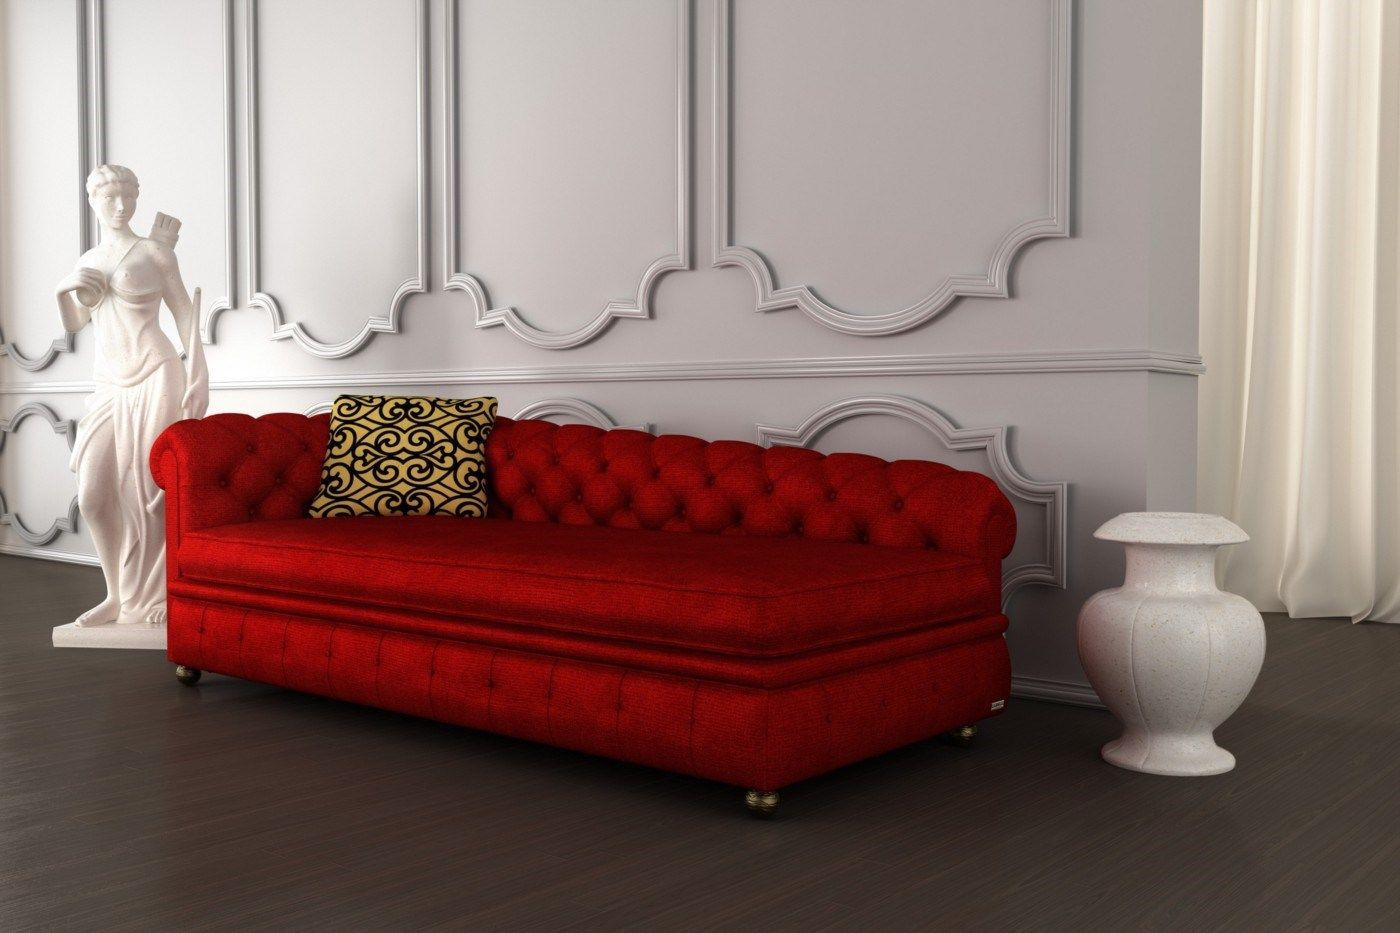 Luxury Tufted Vibrant Red Angled Chaise Sofa